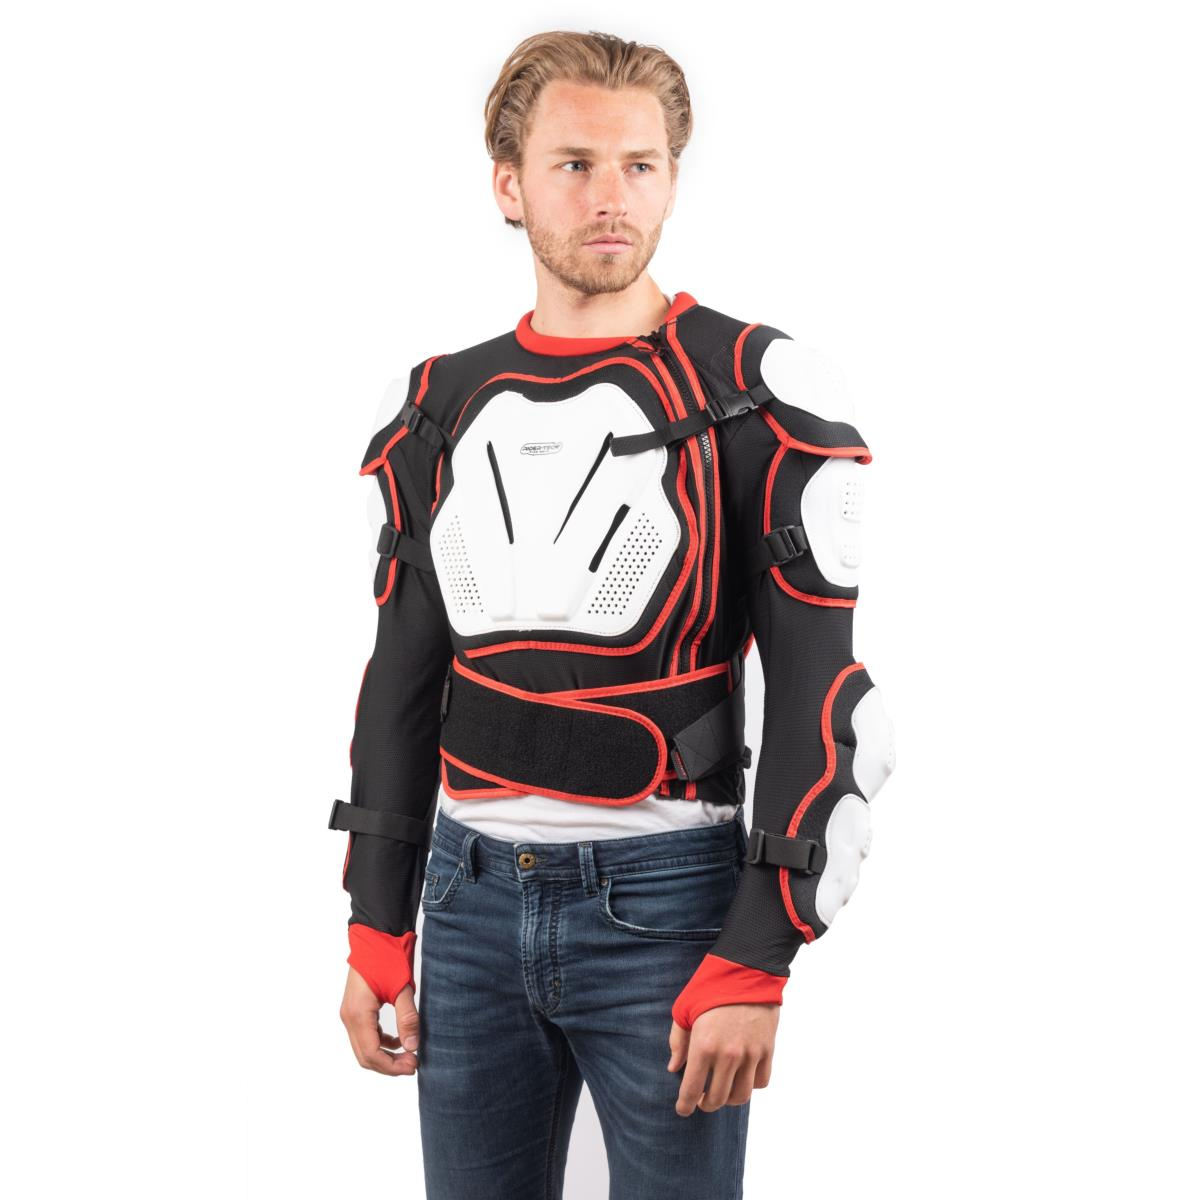 Armure de protection Rider-Tec